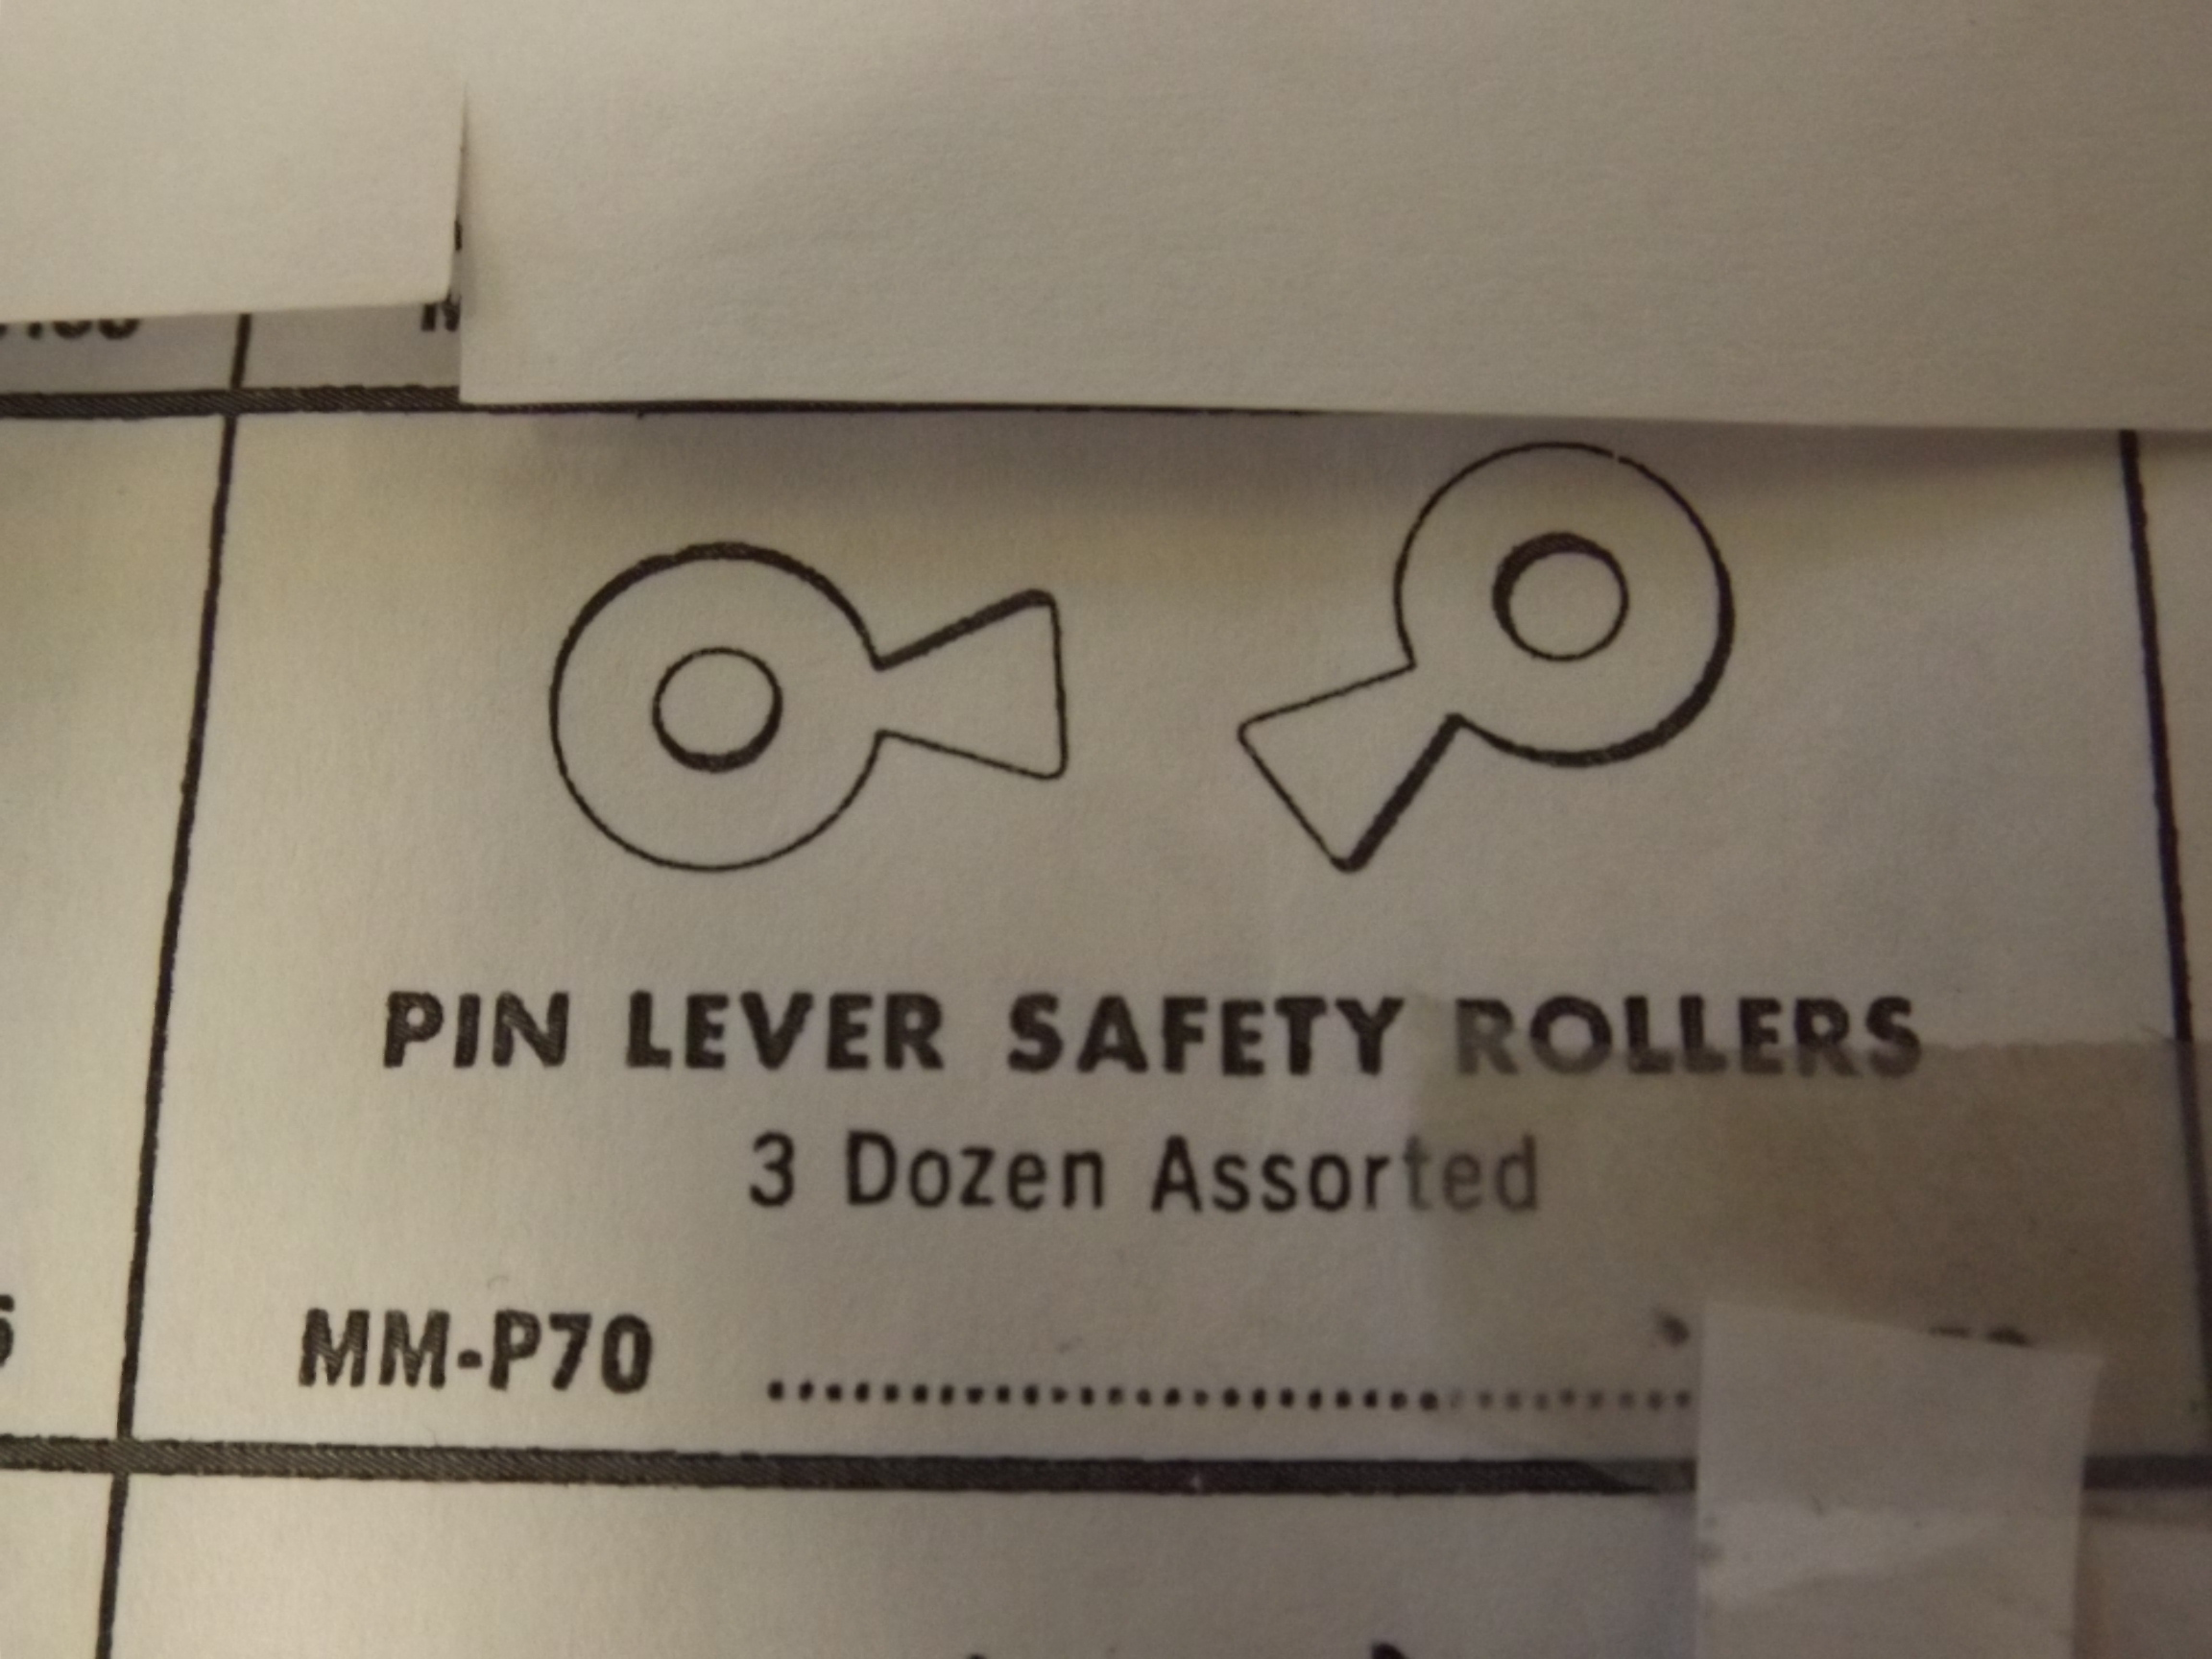 MM-P70 Pin Lever Safety Rollers- 3 dz per pkg- Bestfit- Seven Only!